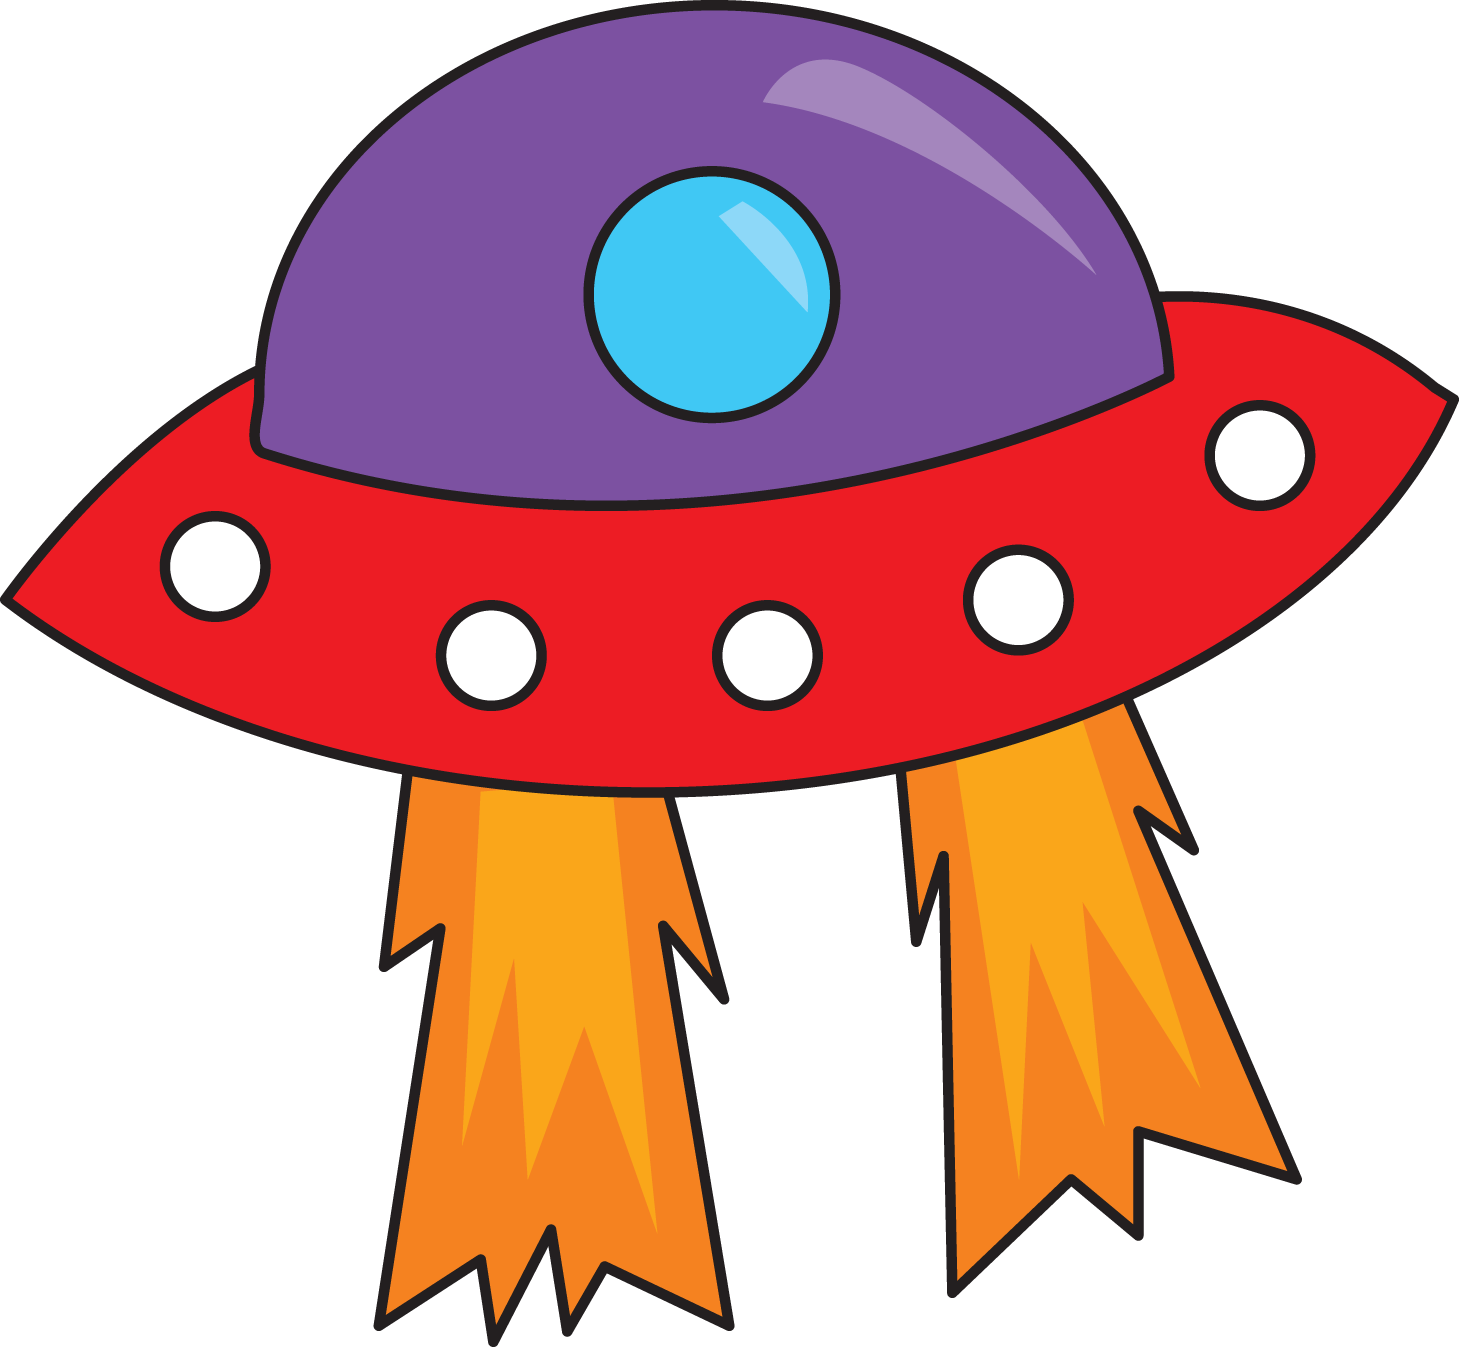 space ship clip art - photo #35